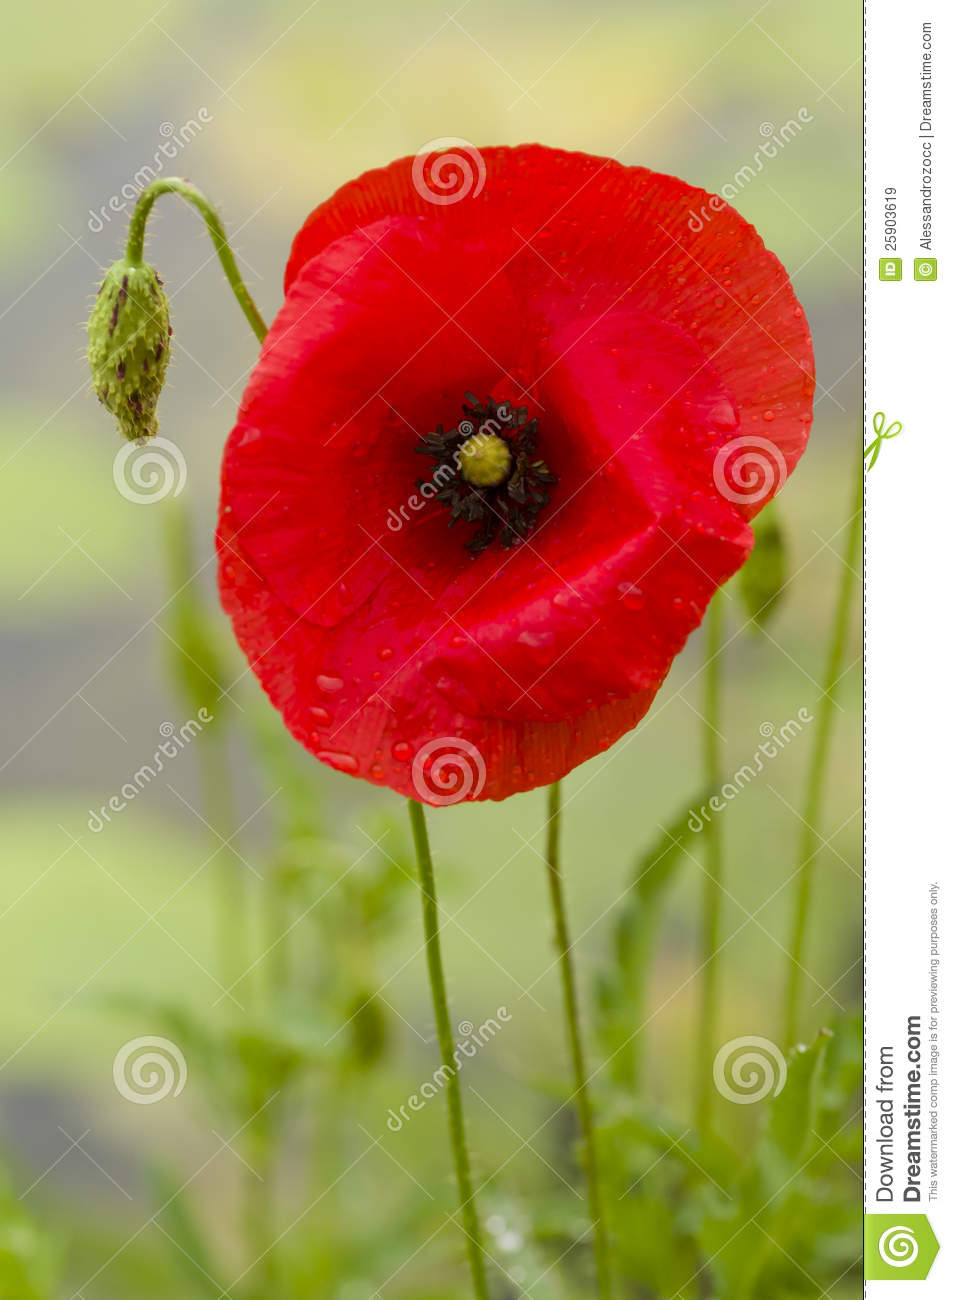 Red poppy flower stock image image of closeup flower 25903619 royalty free stock photo mightylinksfo Images